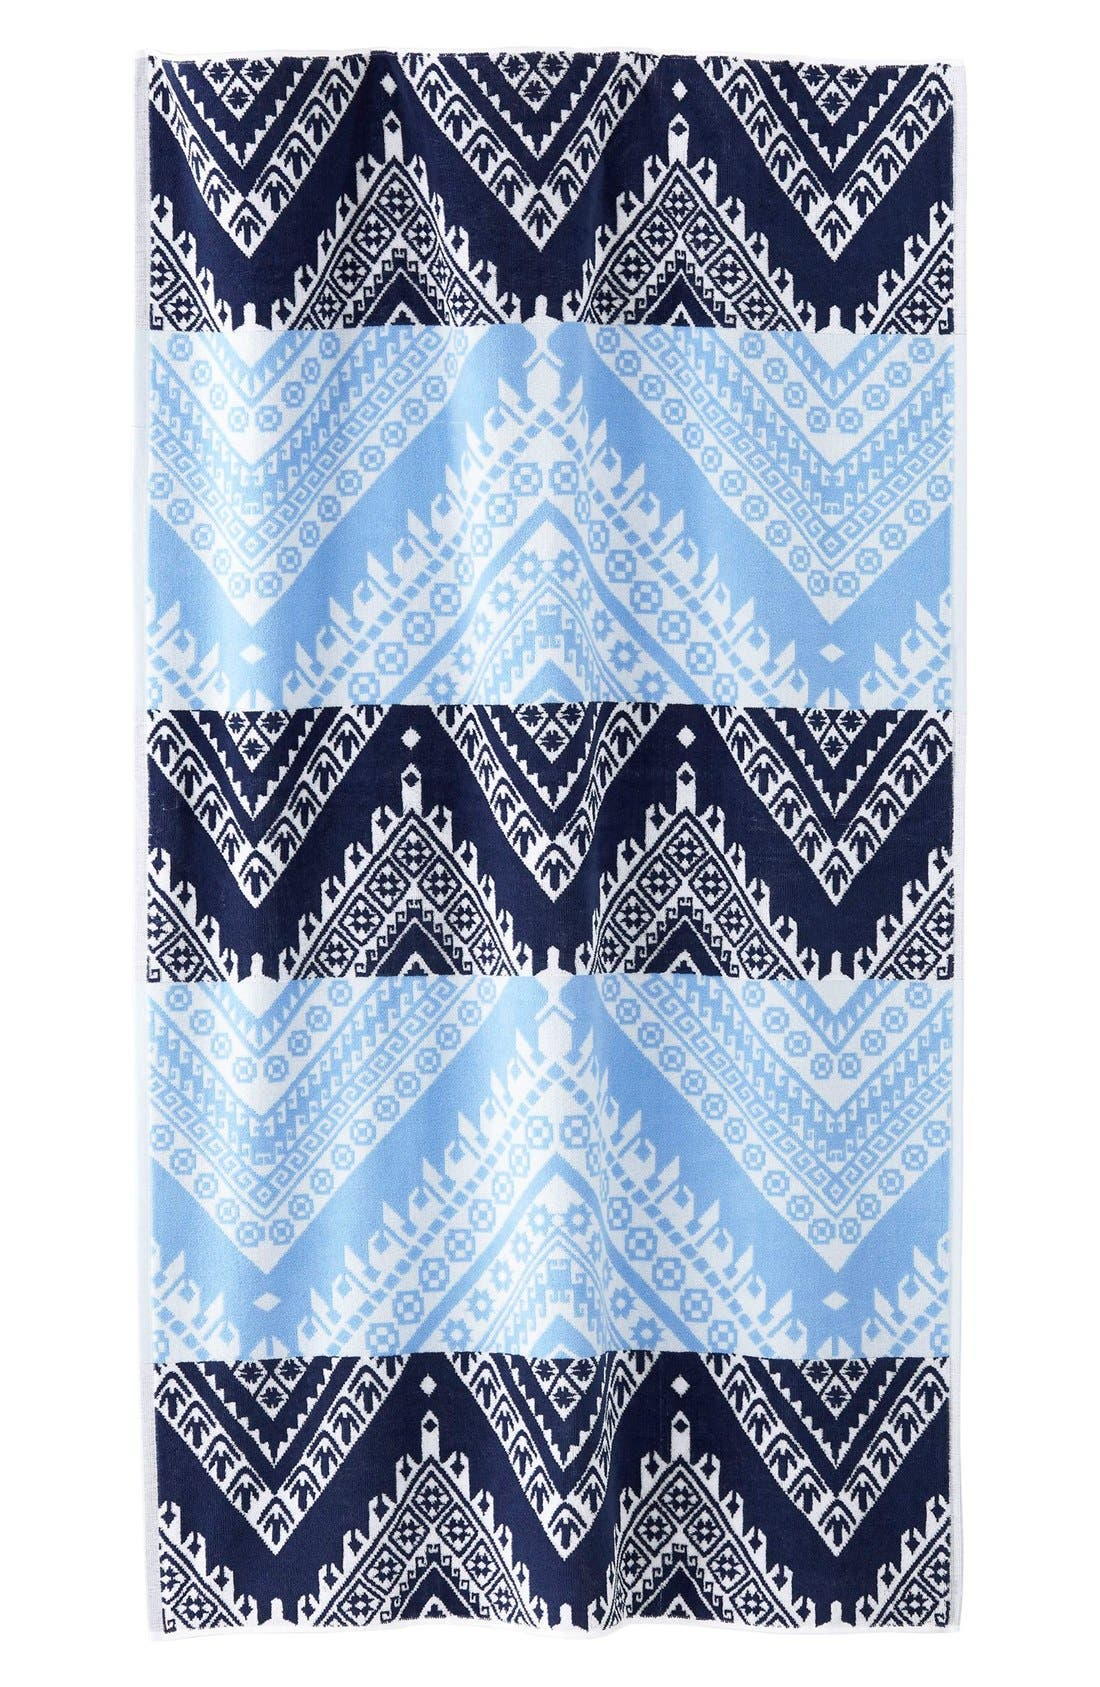 Alternate Image 1 Selected - John Robshaw 'Koh' Chevron Wave Pattern Beach Towel